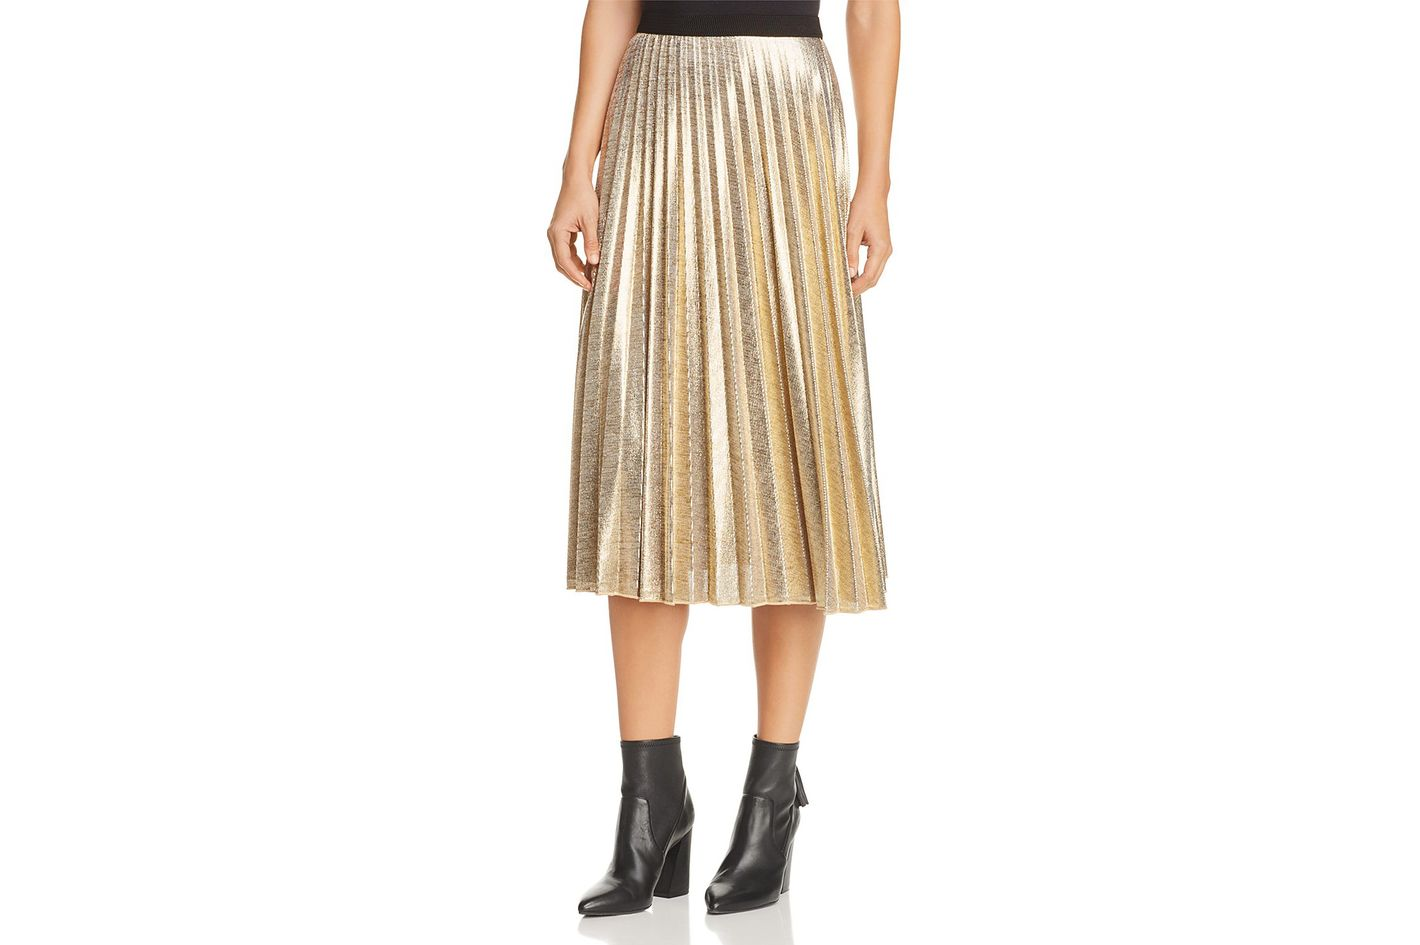 YFB On The Road Hobbes Metallic Pleated Skirt